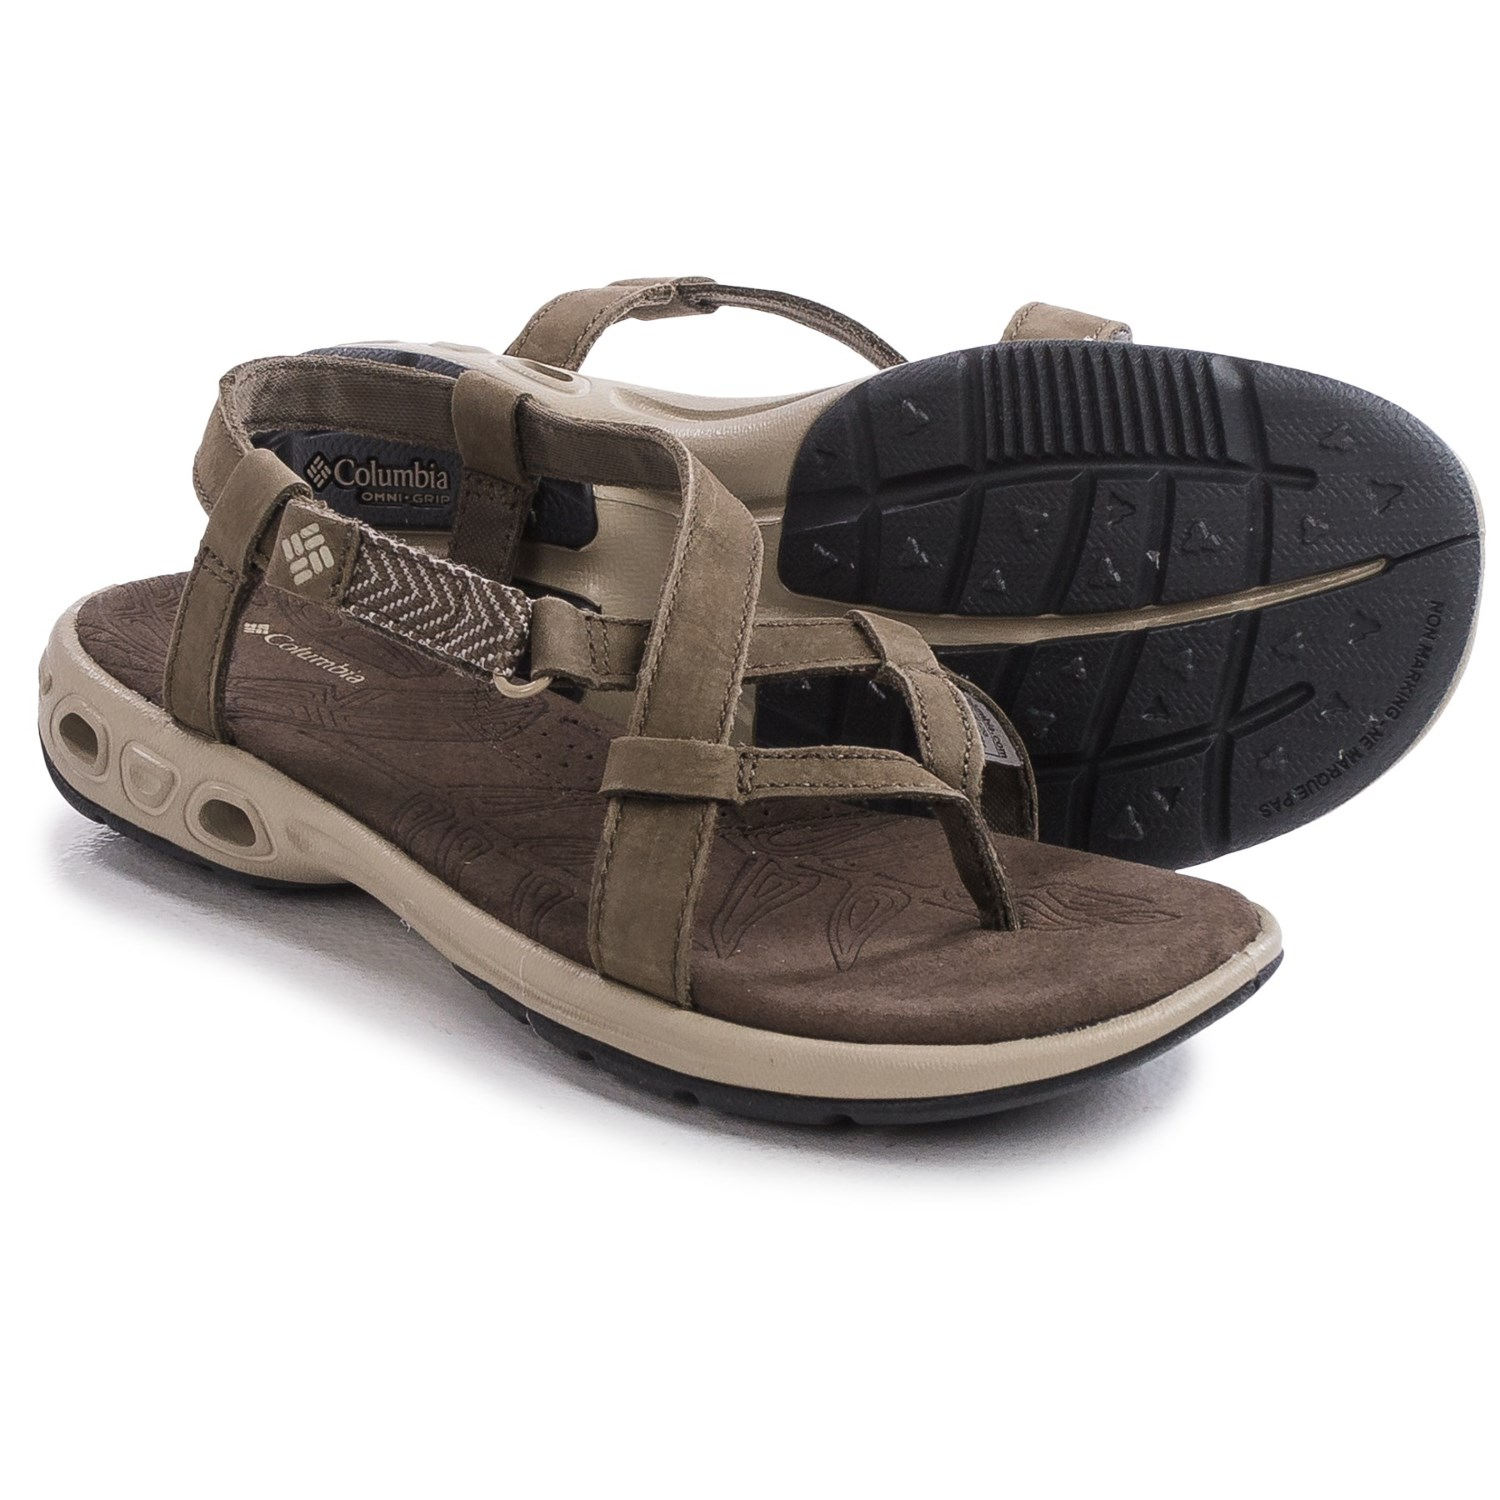 Columbia Sportswear Abaco Vent Sandals For Women